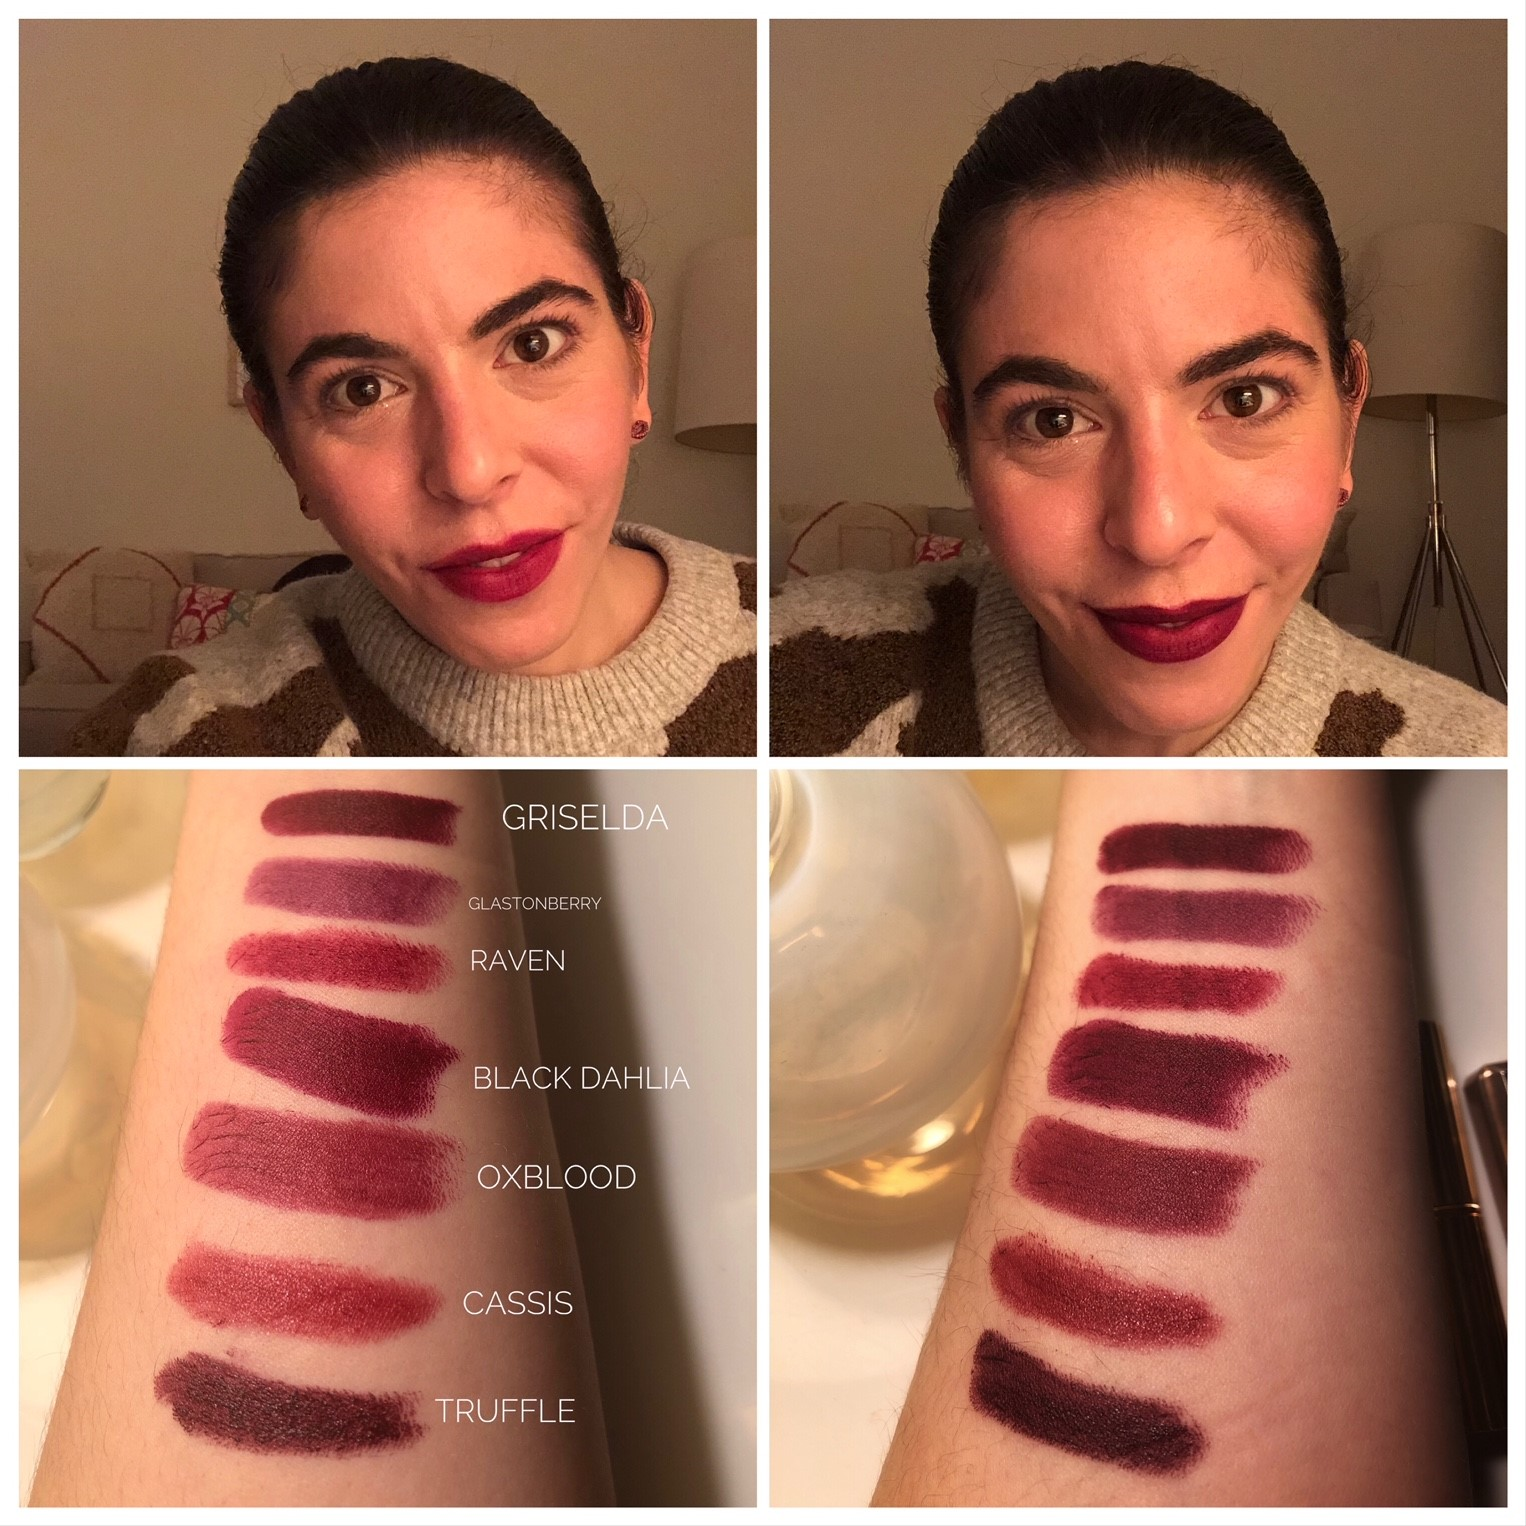 Clockwise from top left: Burberry Lip Velvet in No. 37 Oxblood, Bite Beauty Matte Creme Lip Crayon in Black Truffle, Swatches.